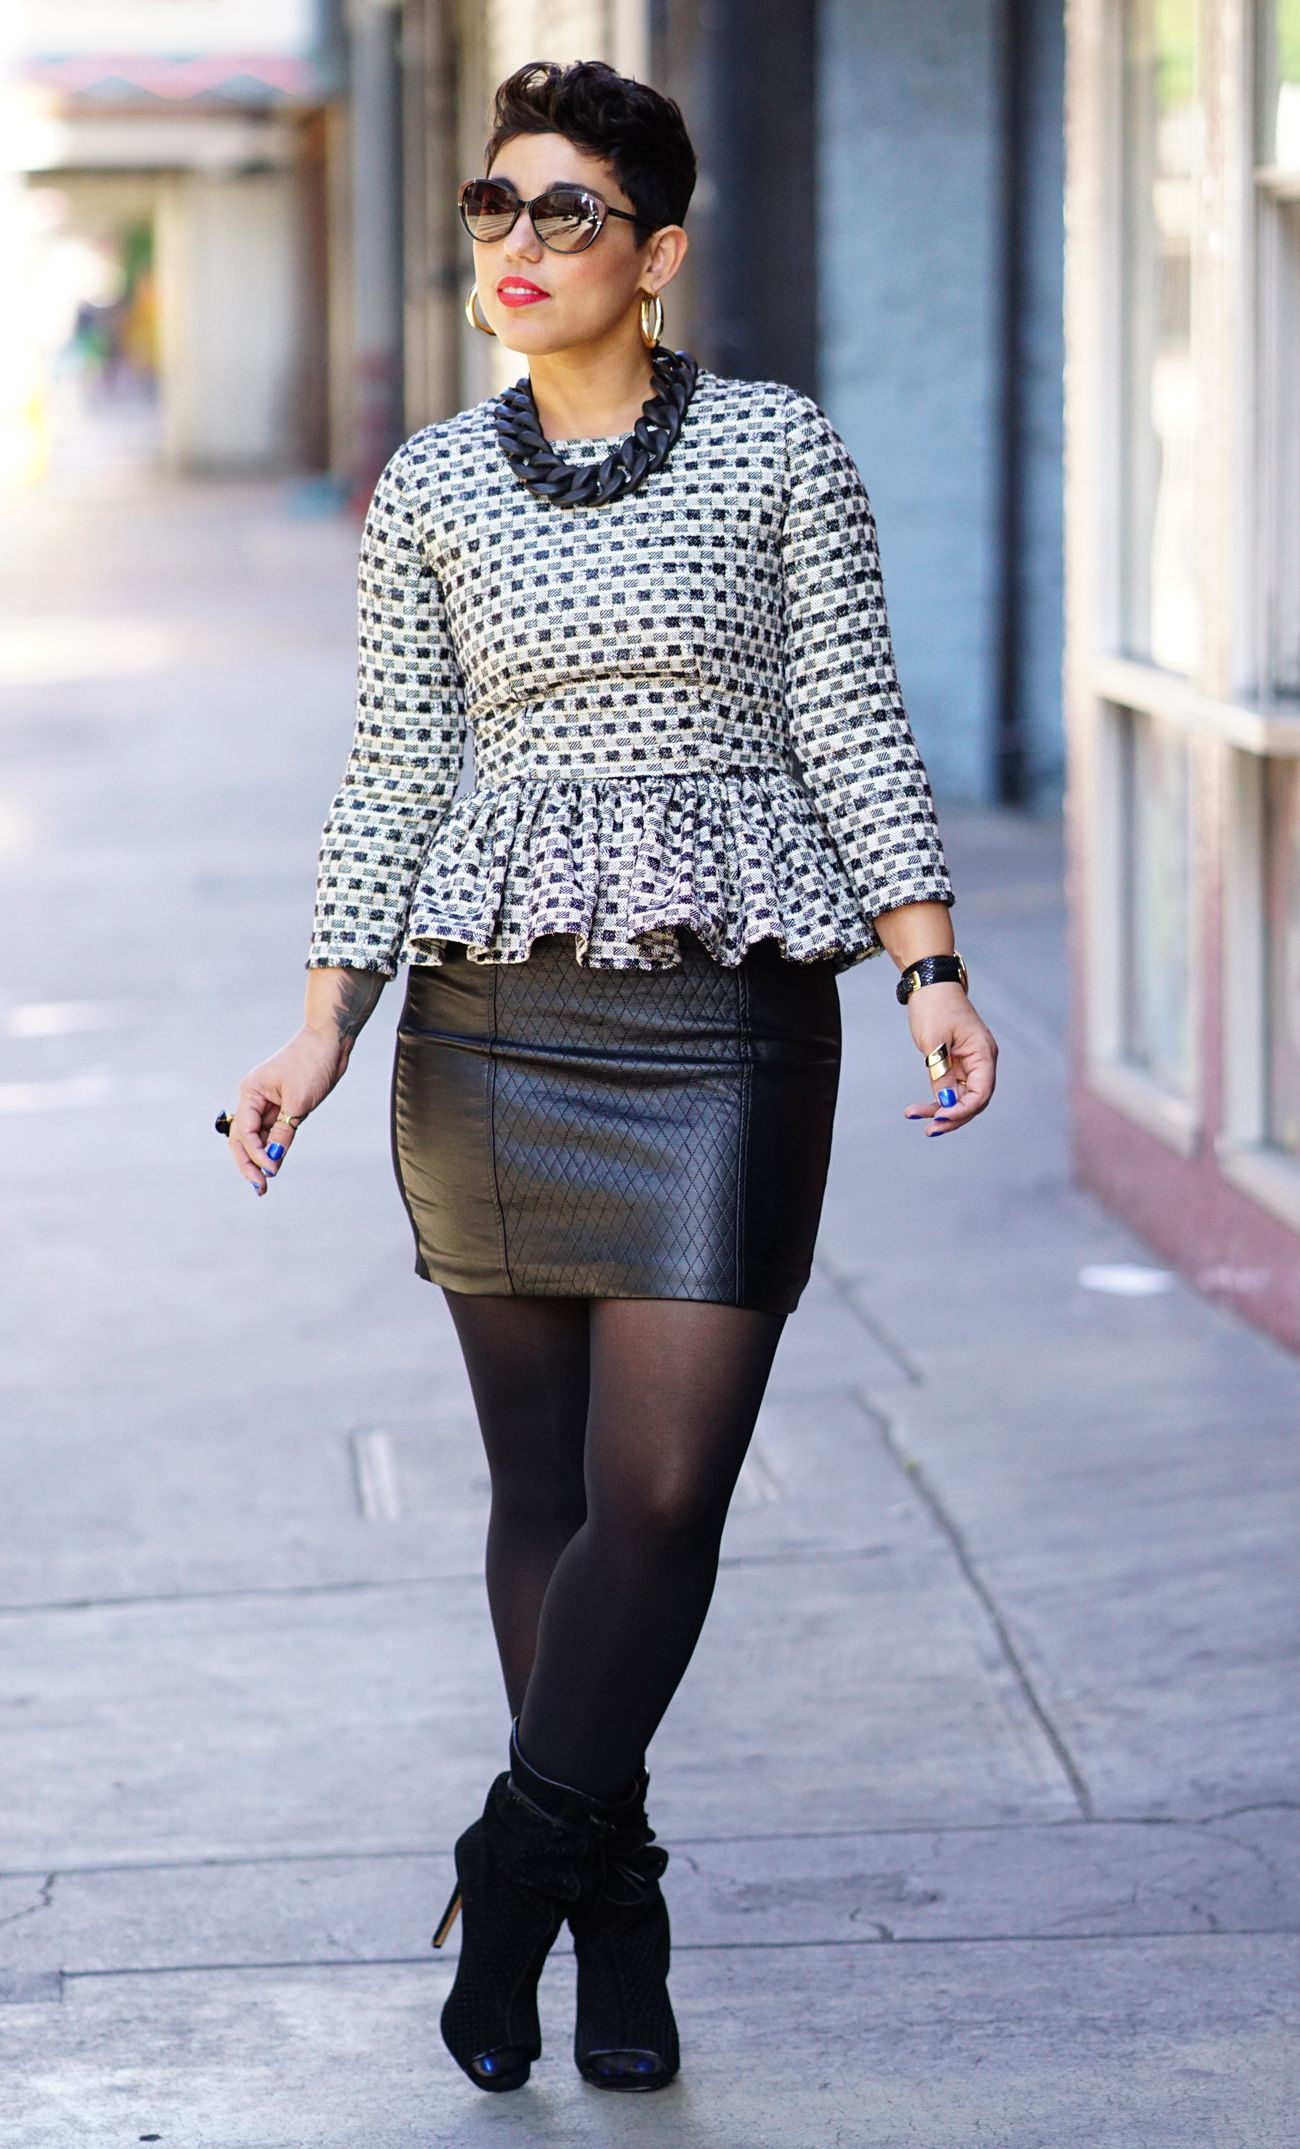 DIY PEPLUM TOP + LEATHER SKIRT   Fashion, Clothes, Style